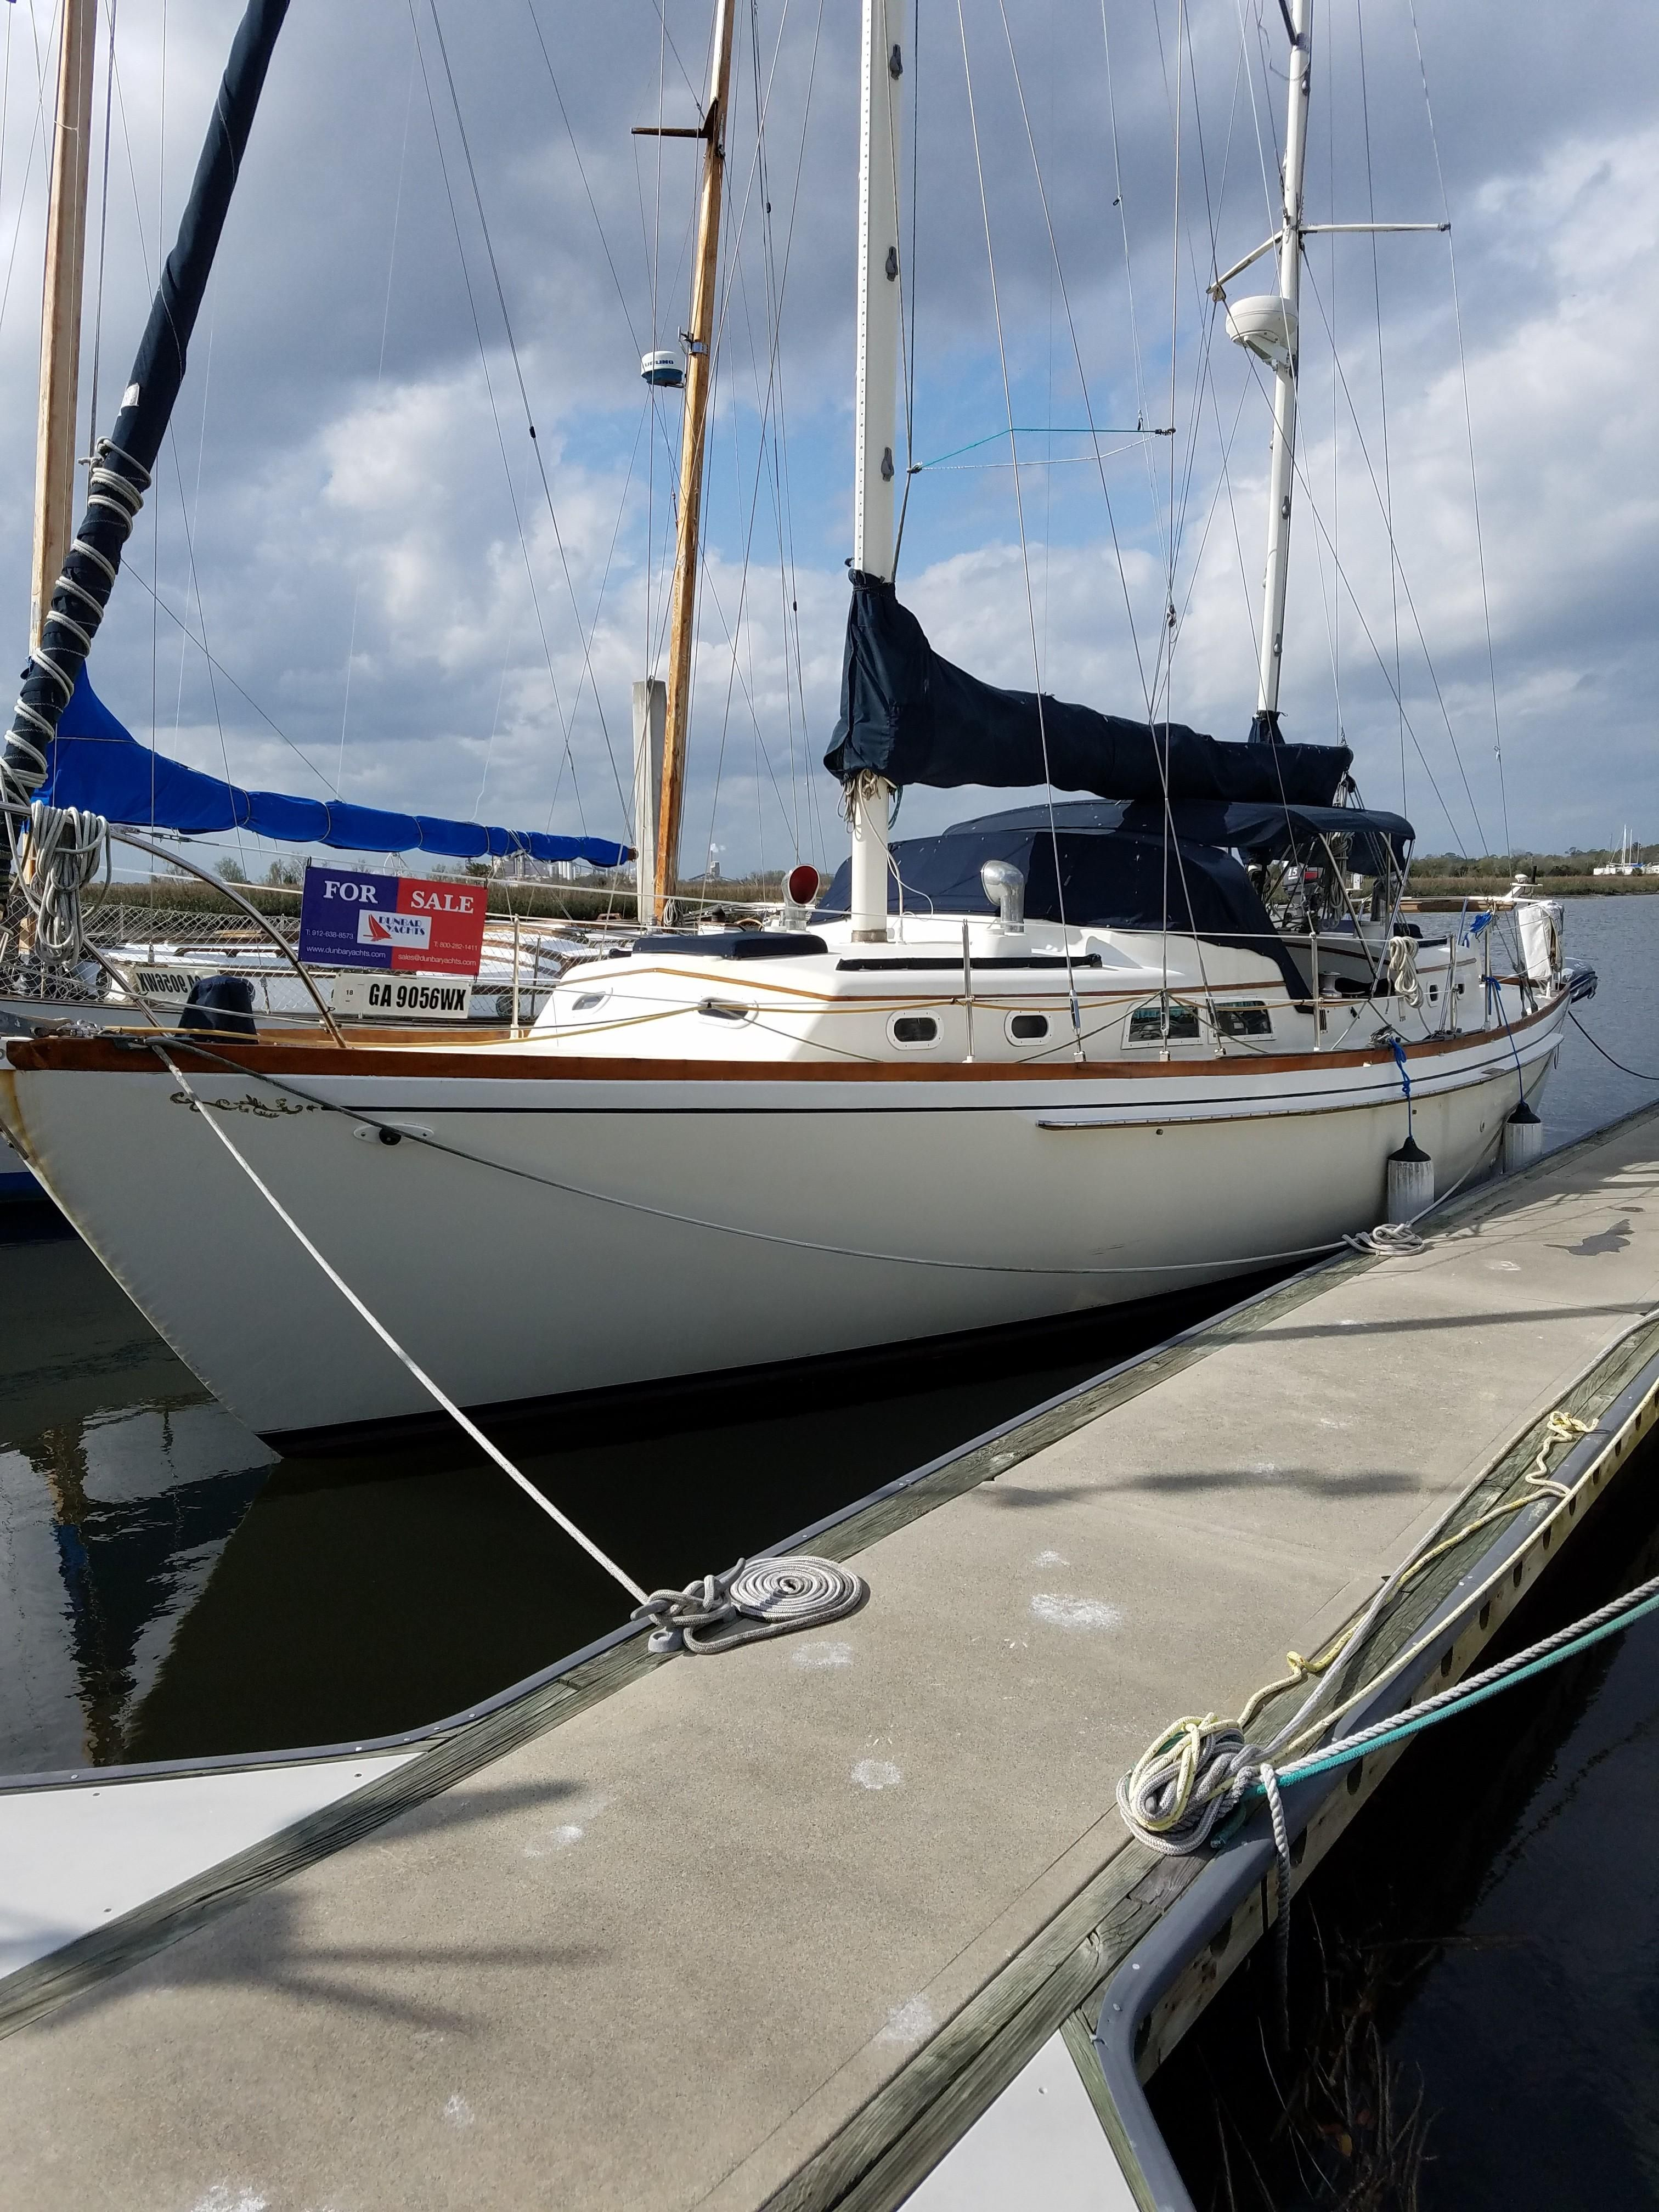 1974 Cheoy Lee Midshipman Sail Boat For Sale